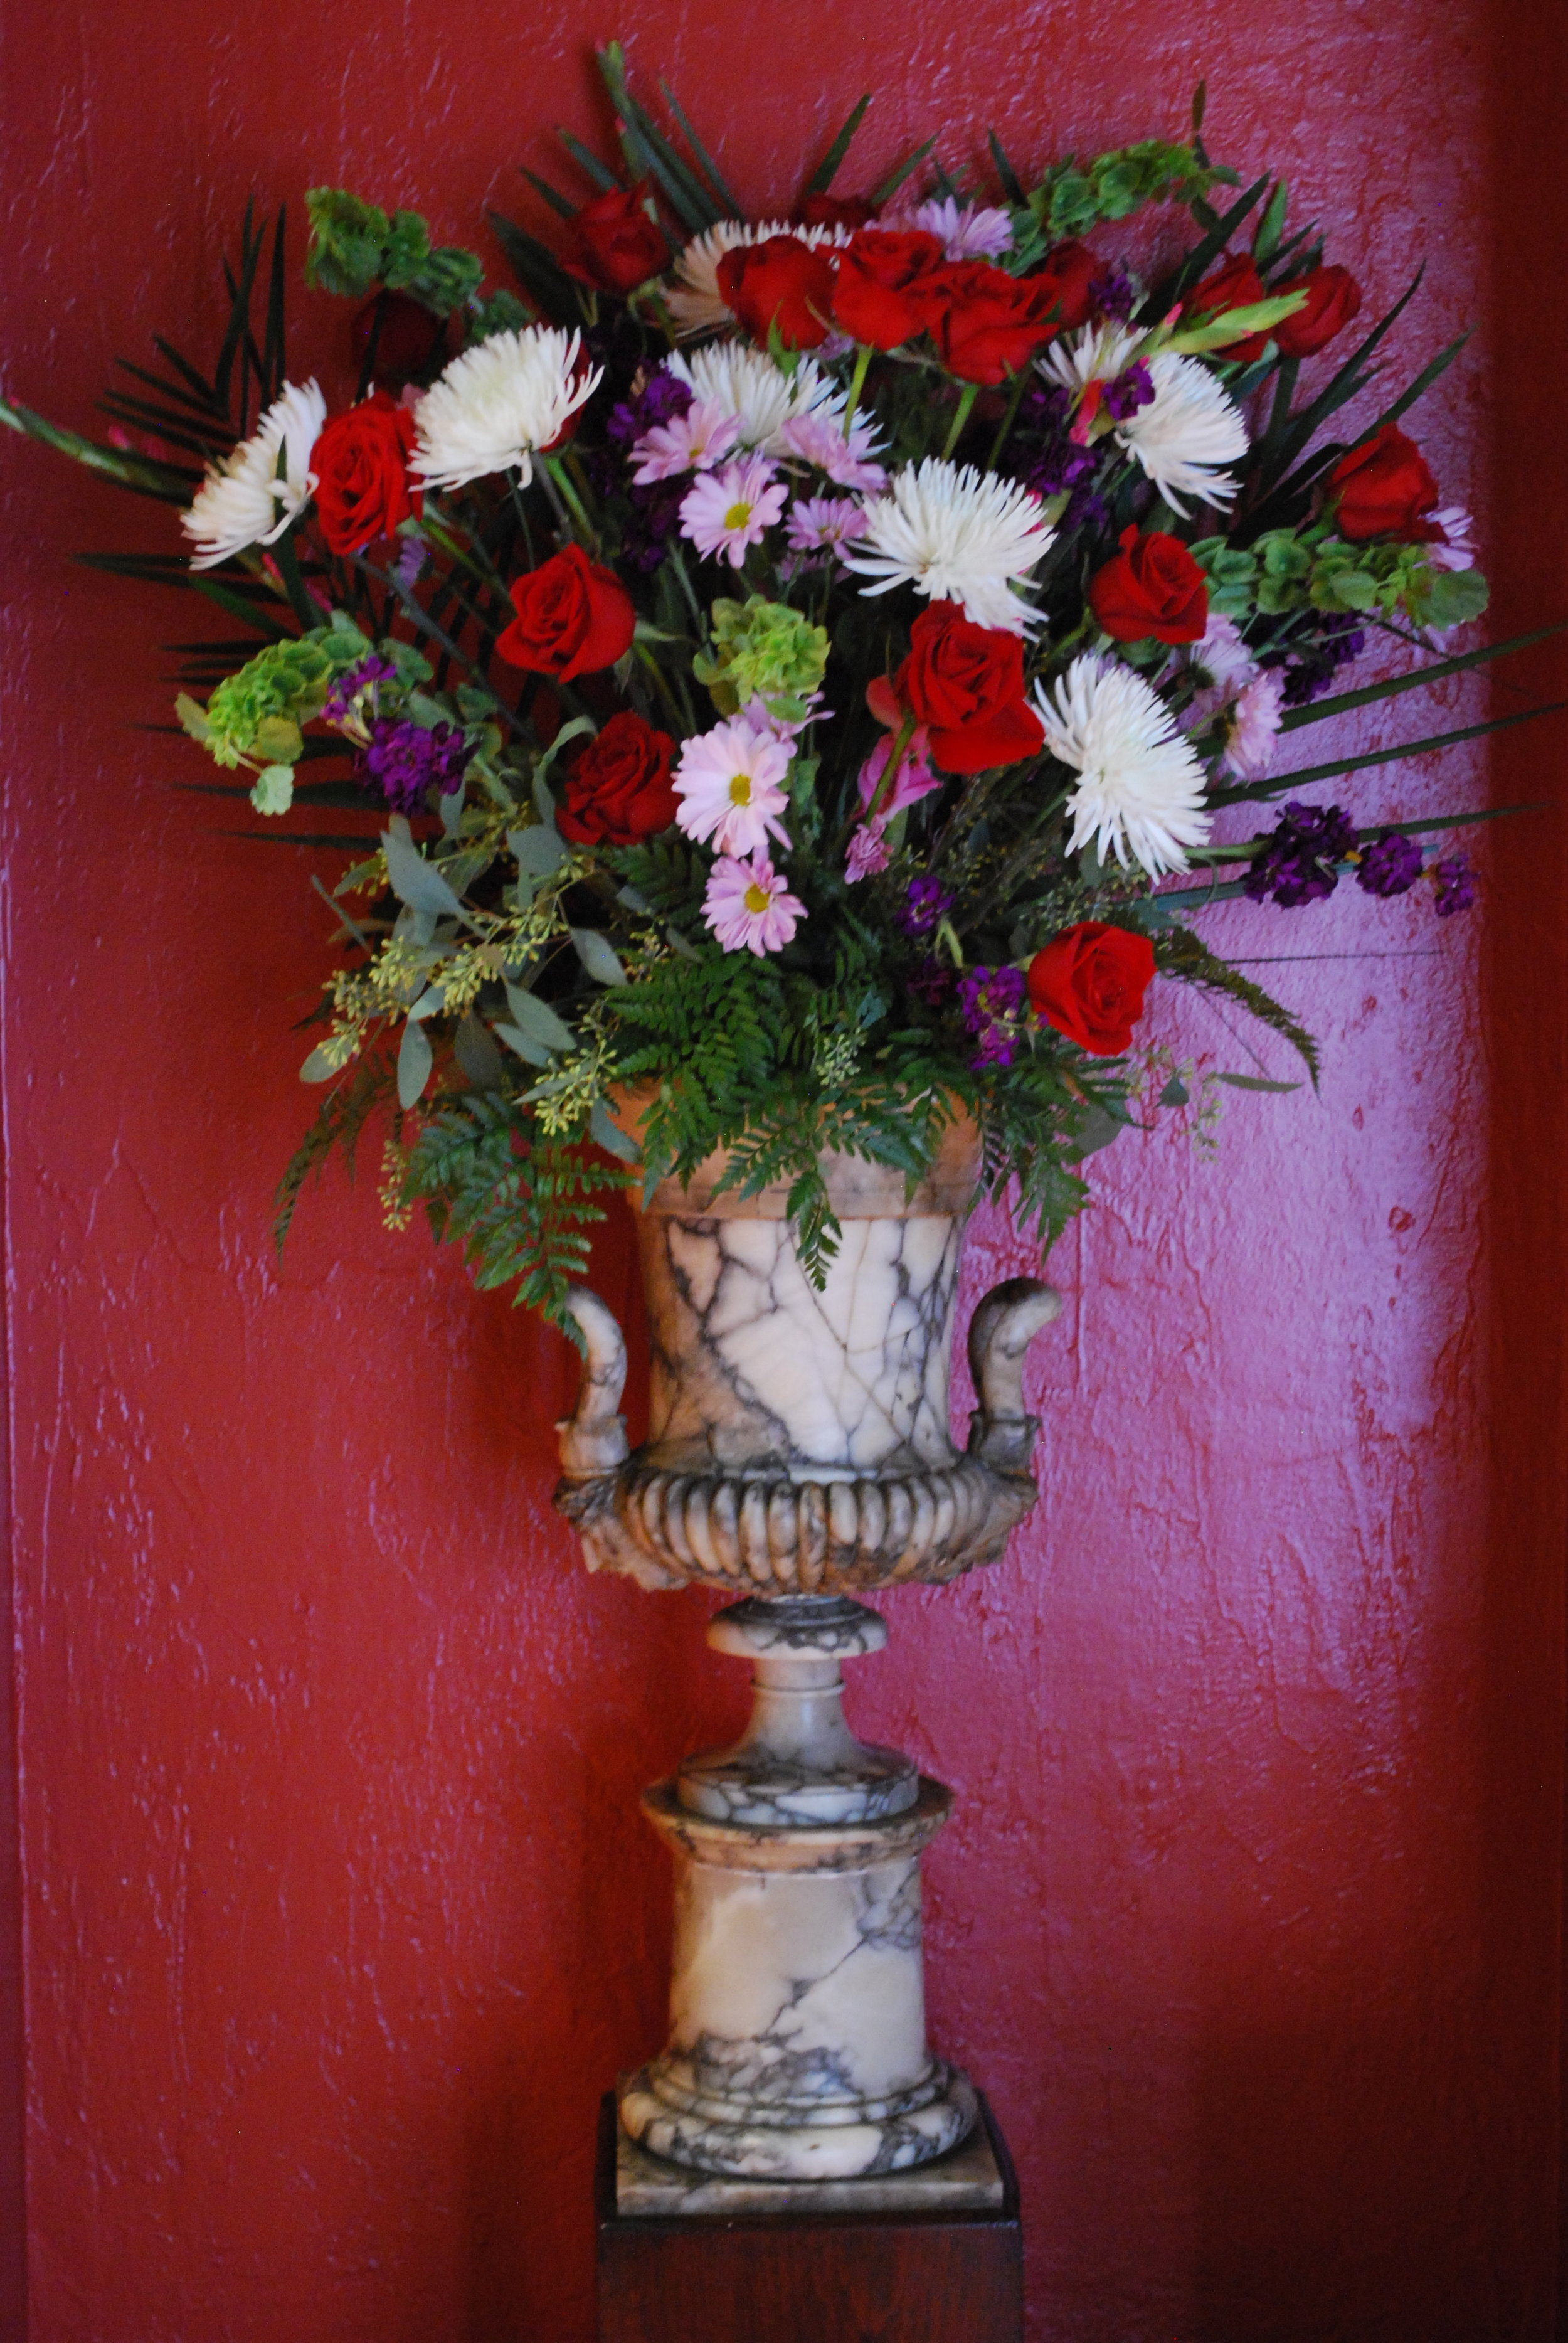 One of the beautiful flower arrangements designed by the flower guild.